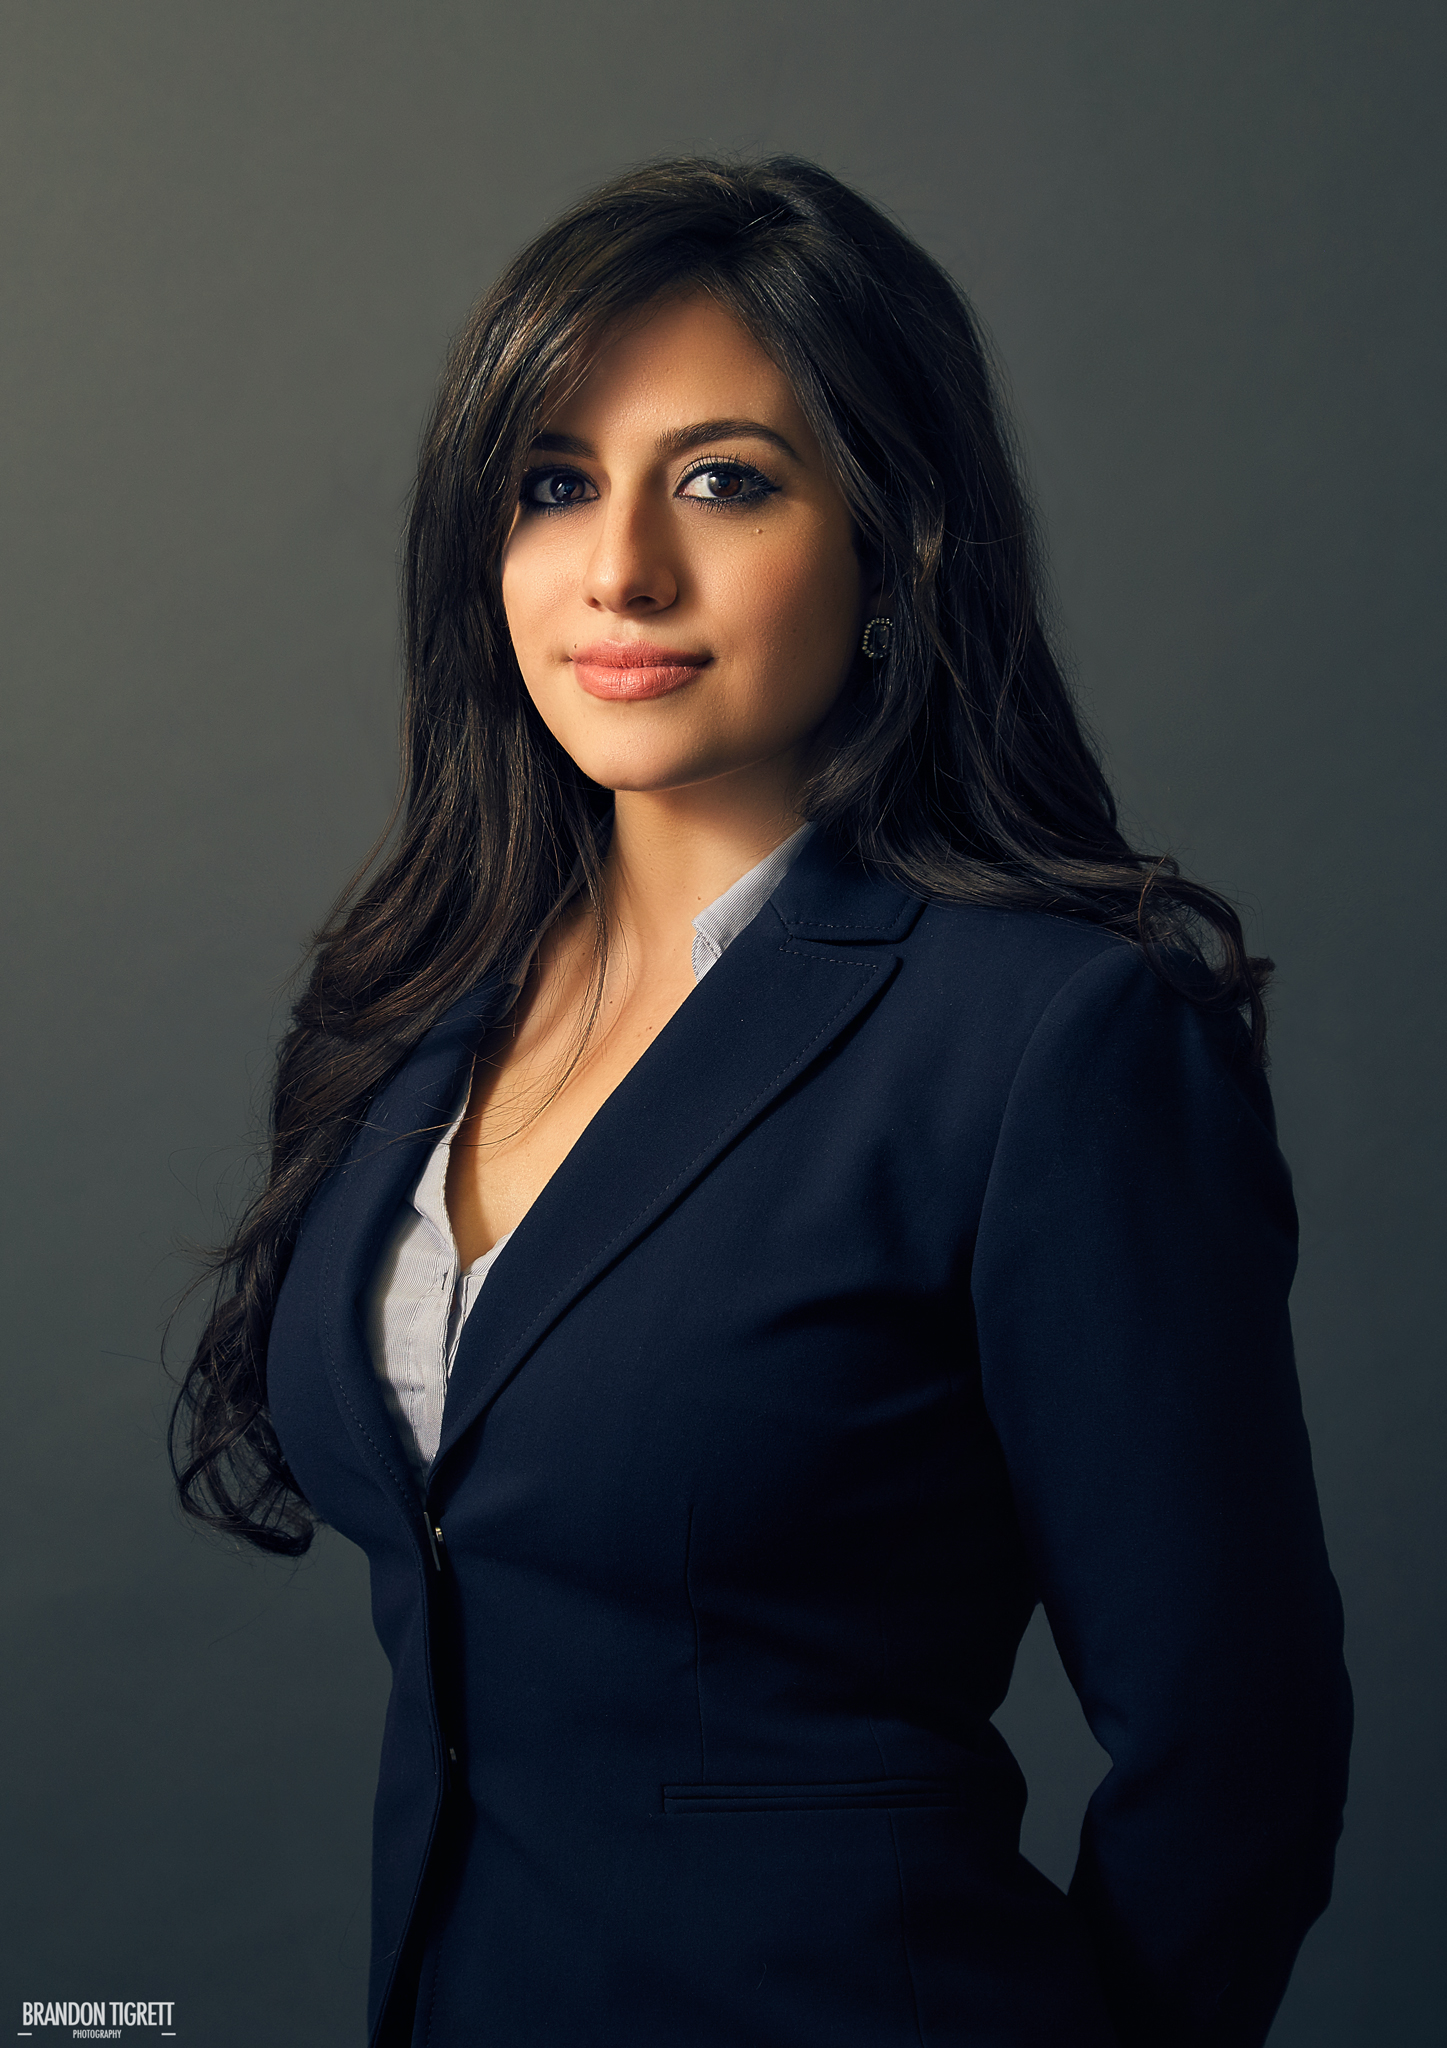 Professional Attorney's Headshot